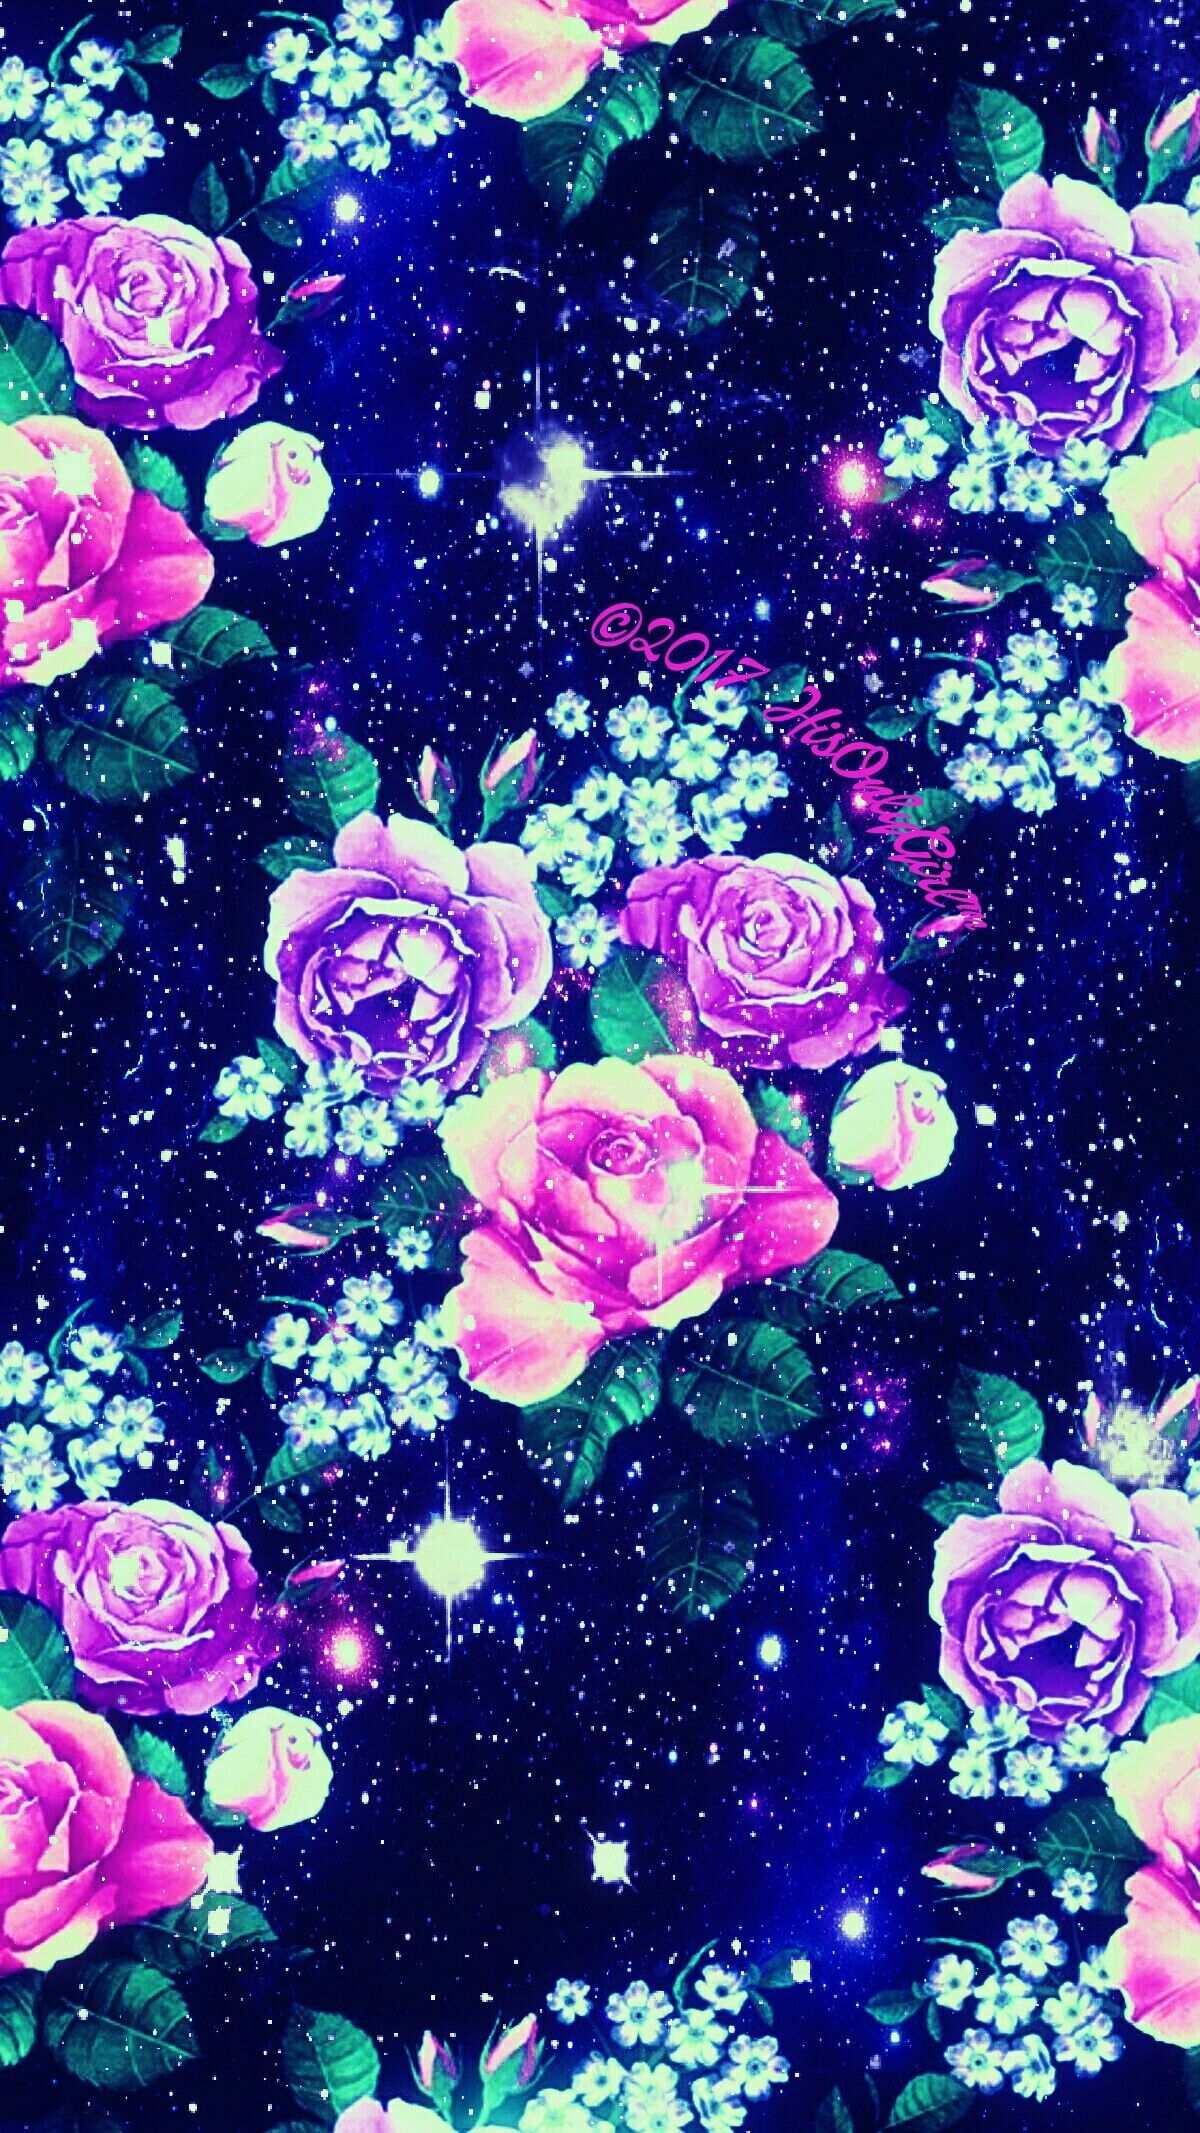 Rose Galaxy Wallpapers Top Free Rose Galaxy Backgrounds Wallpaperaccess